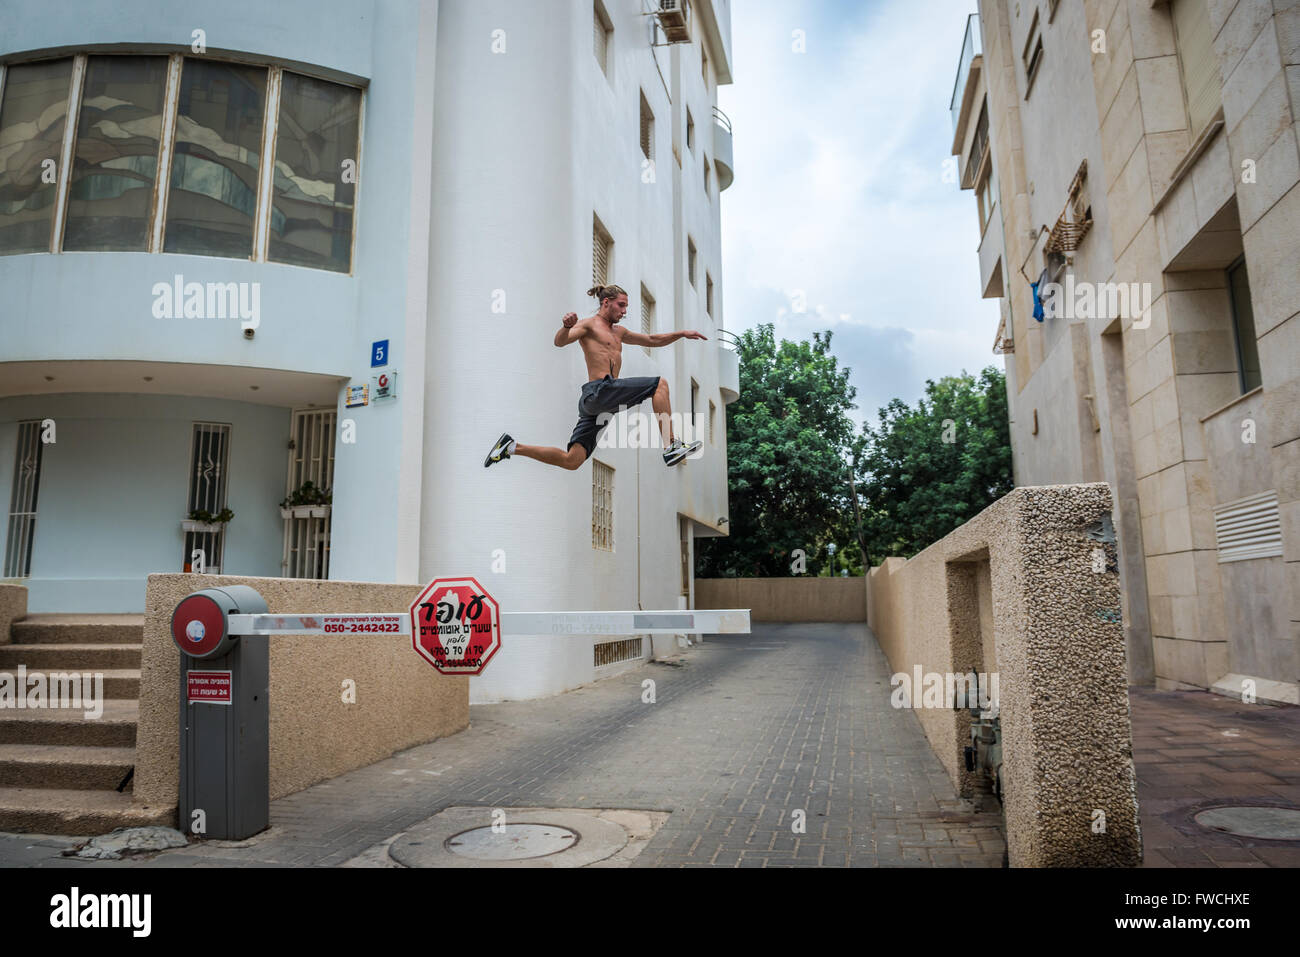 Parkour in Tel Aviv city, Israel - Stock Image